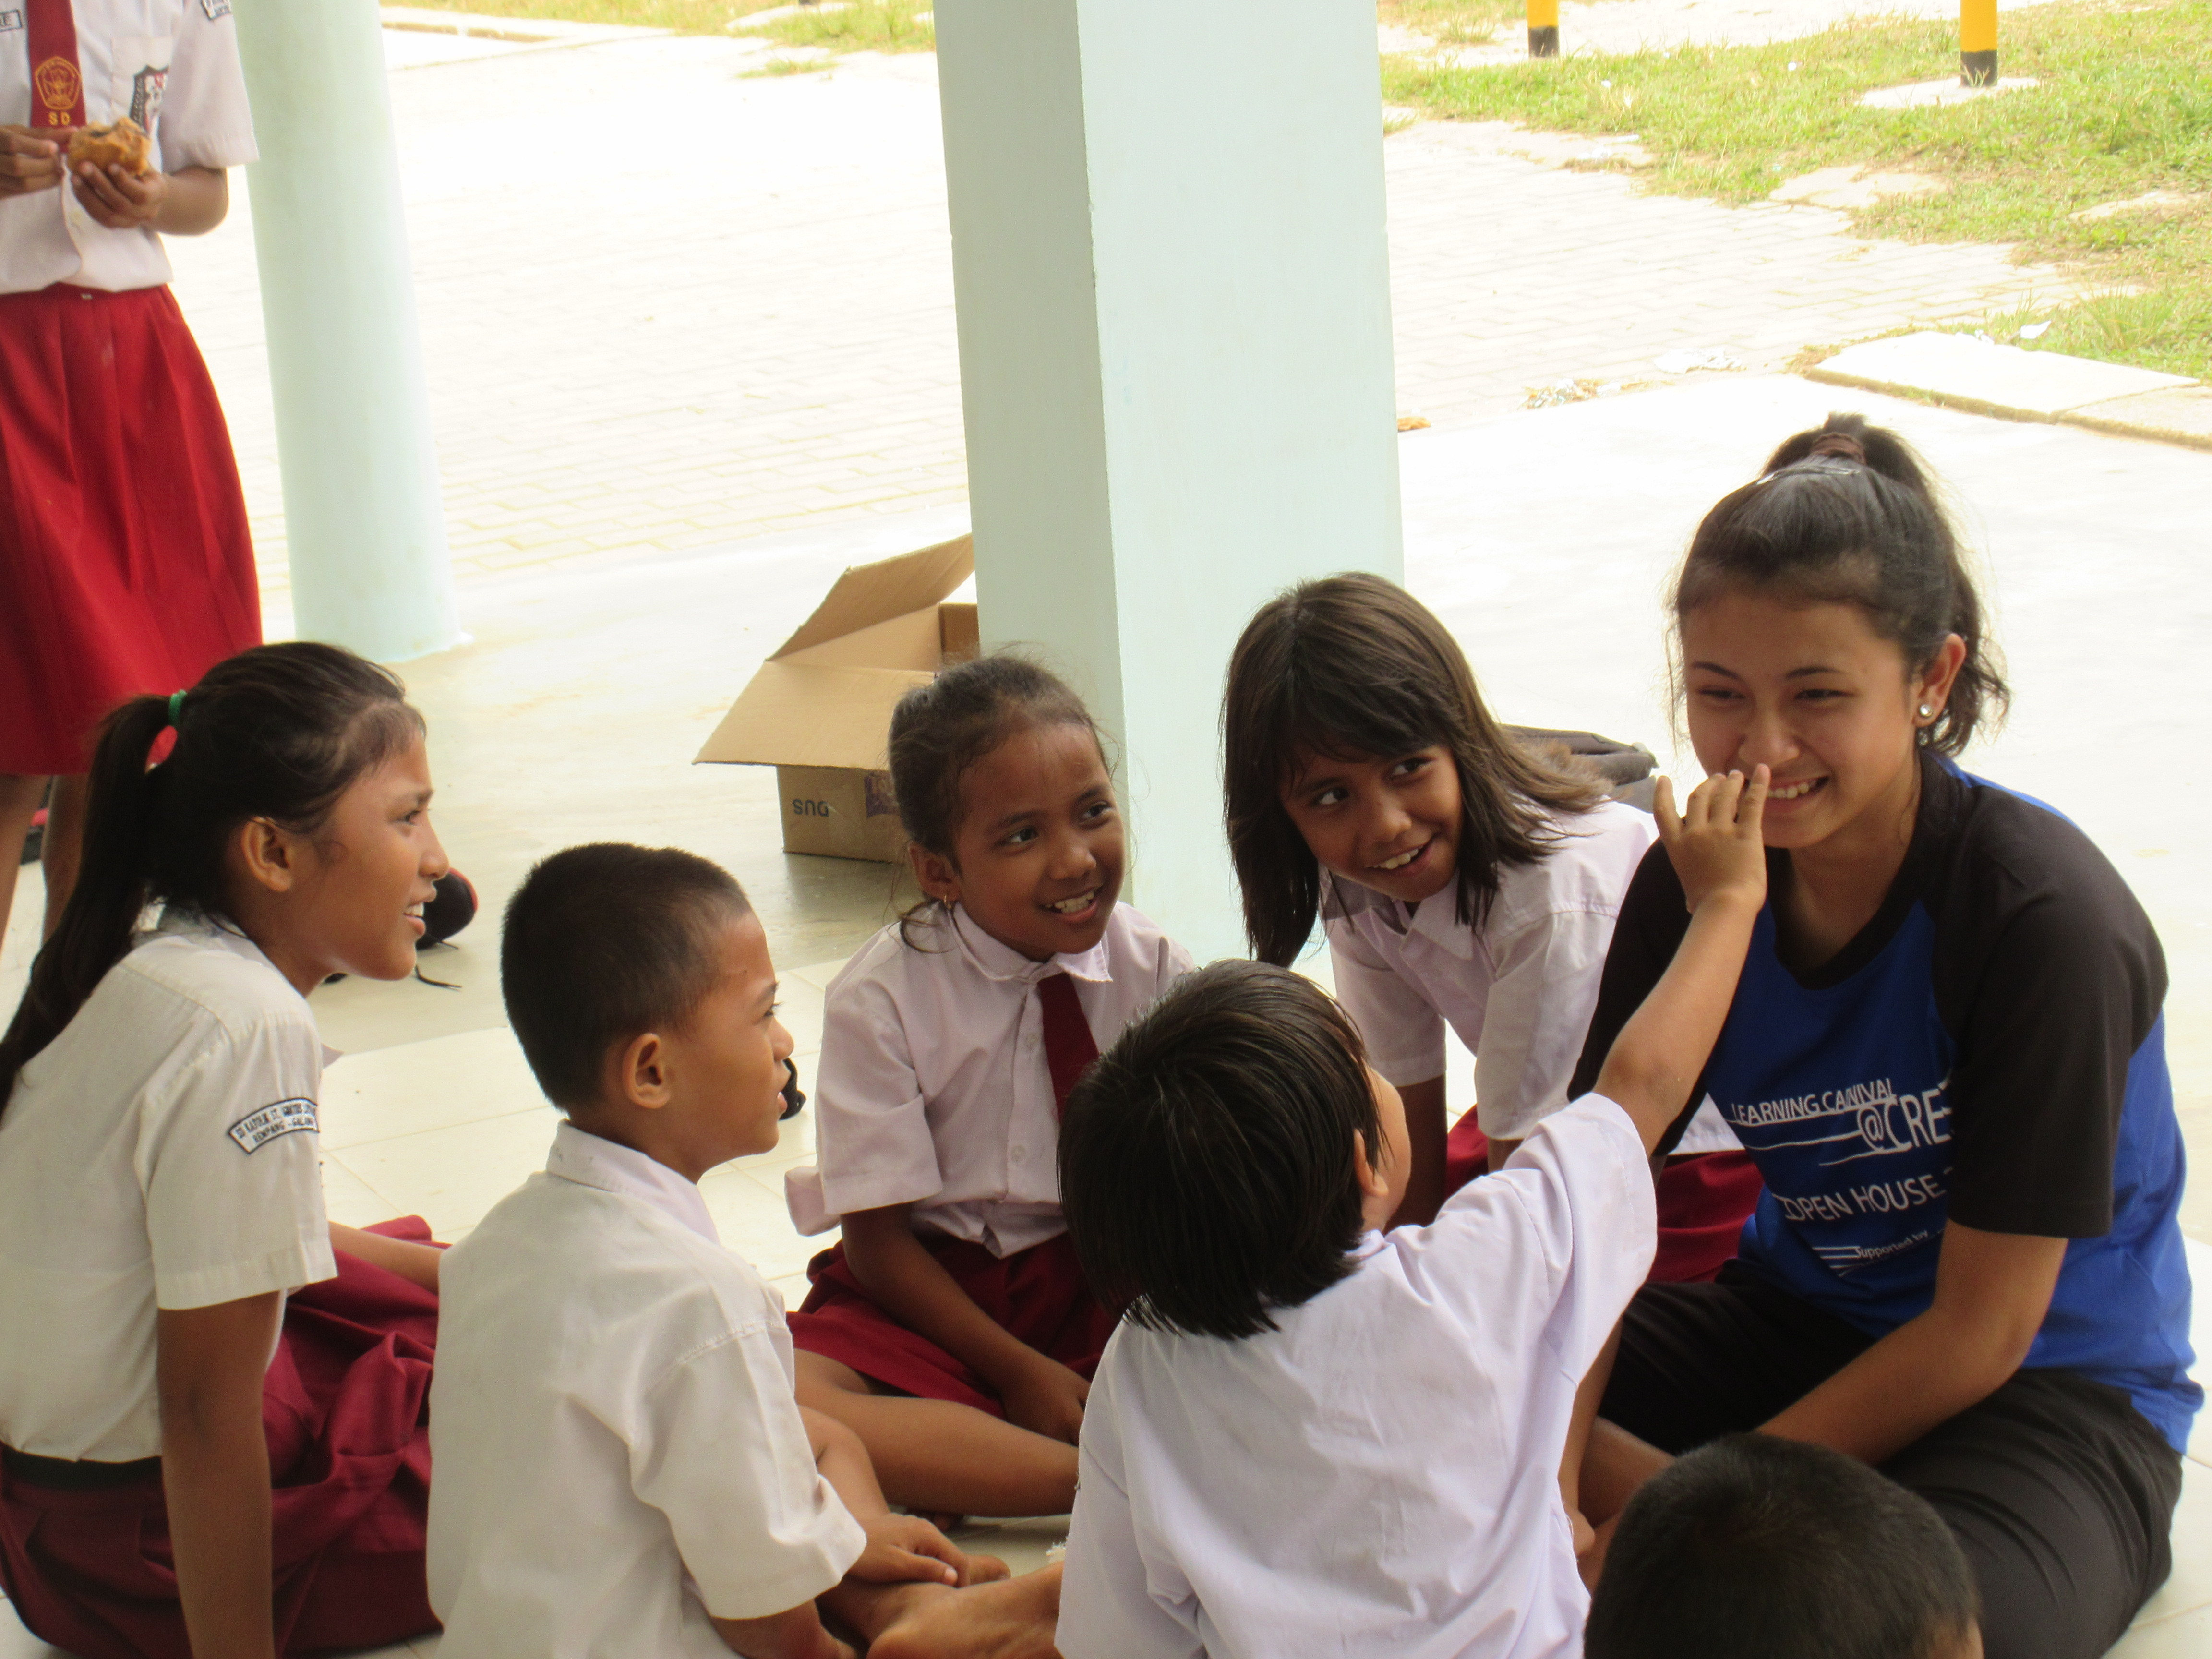 Showing sisterly love to the less fortunate kids in overseas service learning.JPG